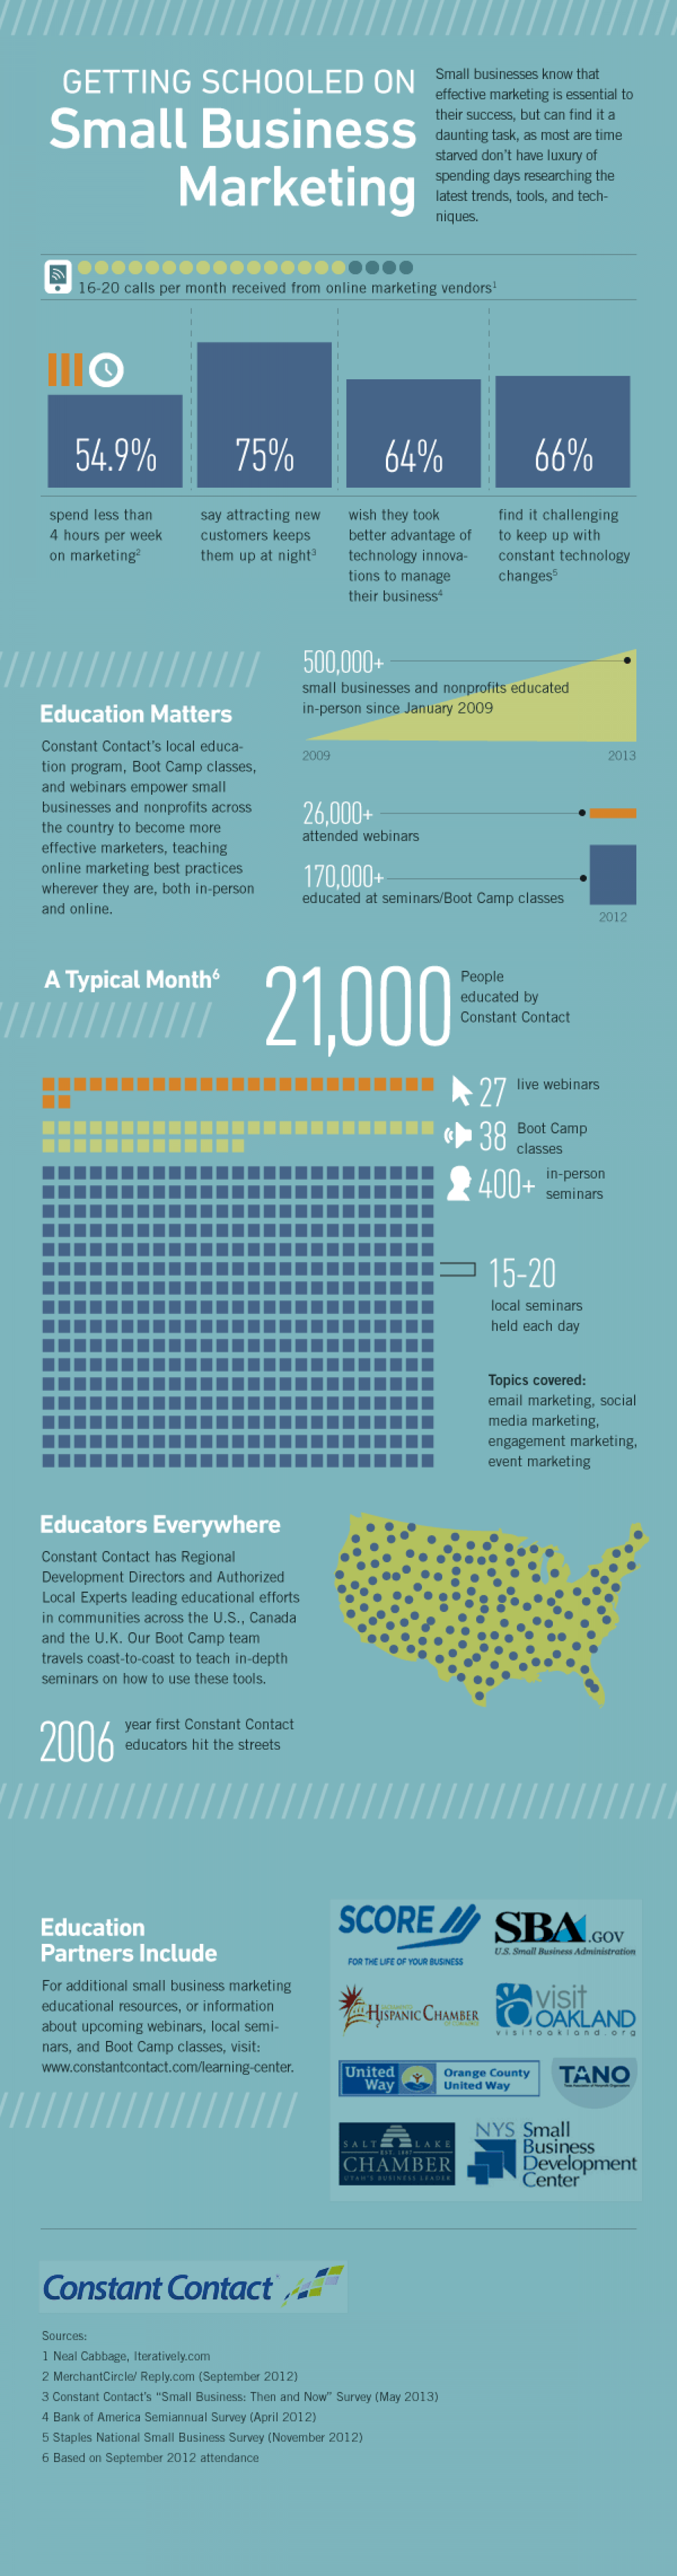 Getting Schooled on Small Business Marketing Infographic